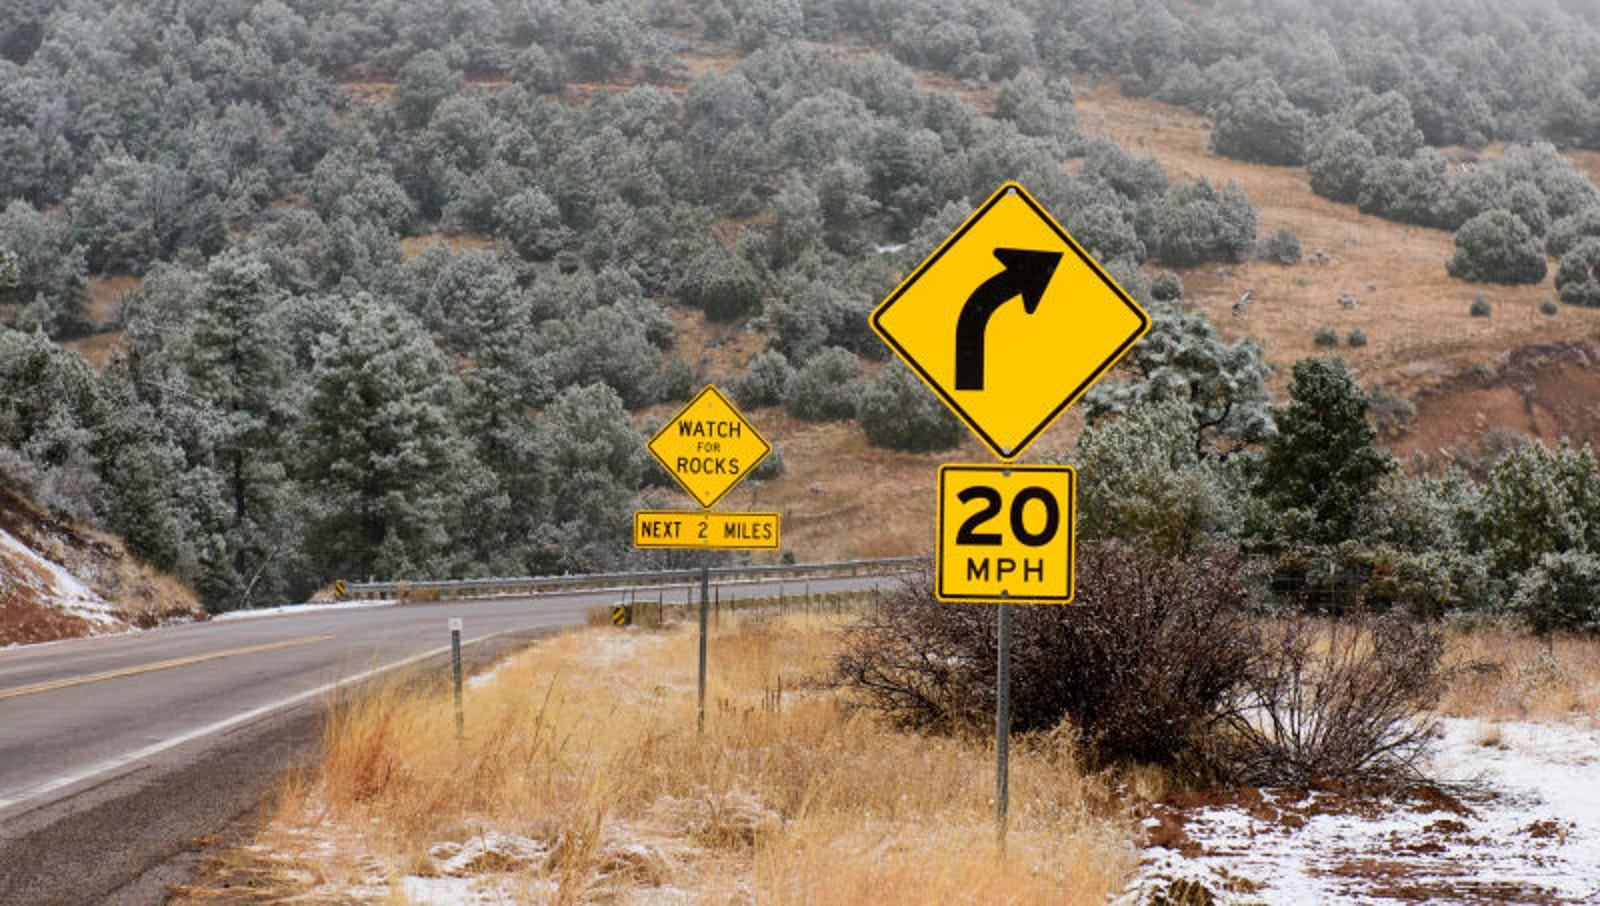 Signs Make Upcoming Section Of Road Sound Pretty Badass